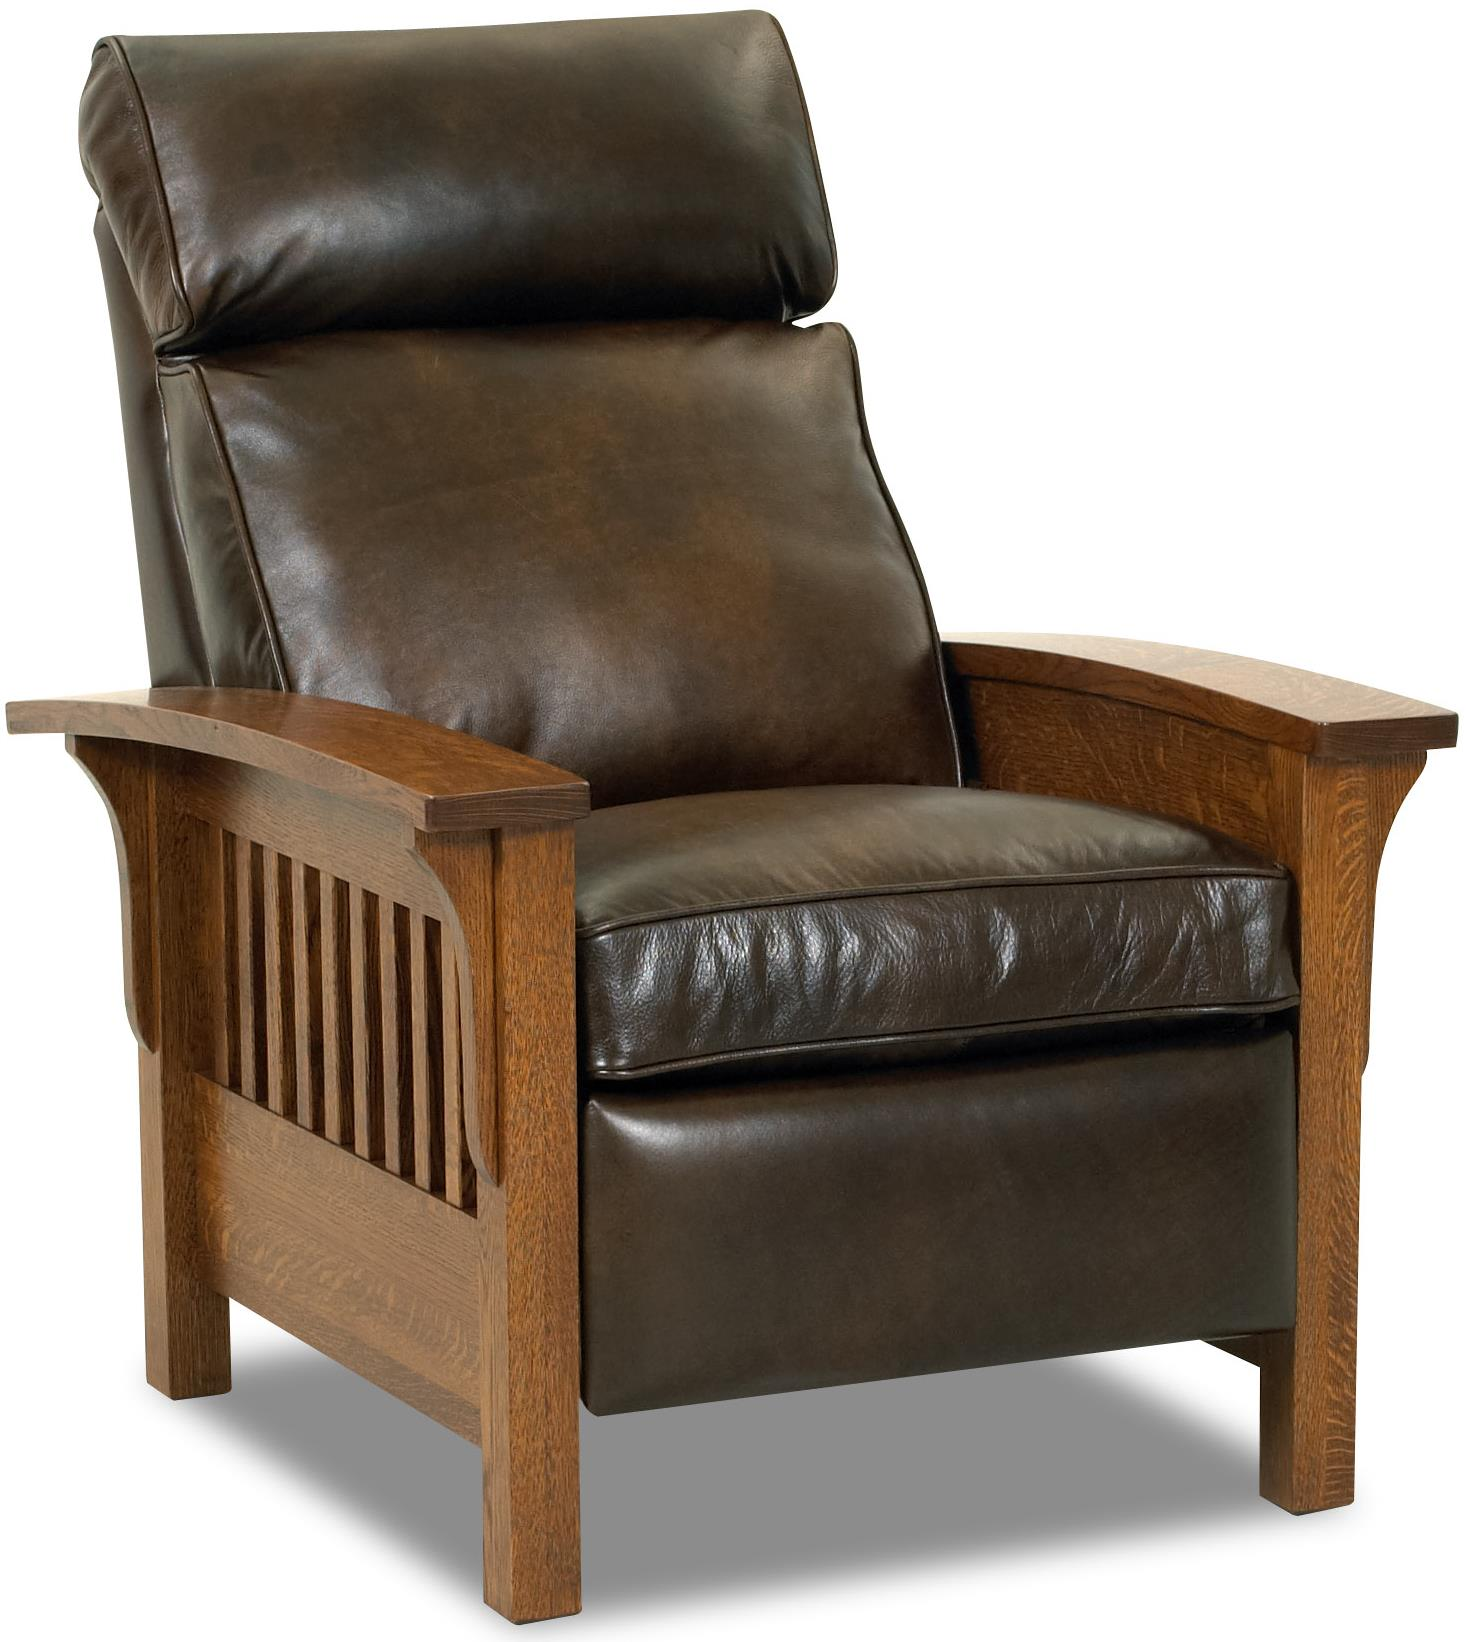 Mission Recliner Chair Comfort Design Mission High Leg Leather Split Recliner